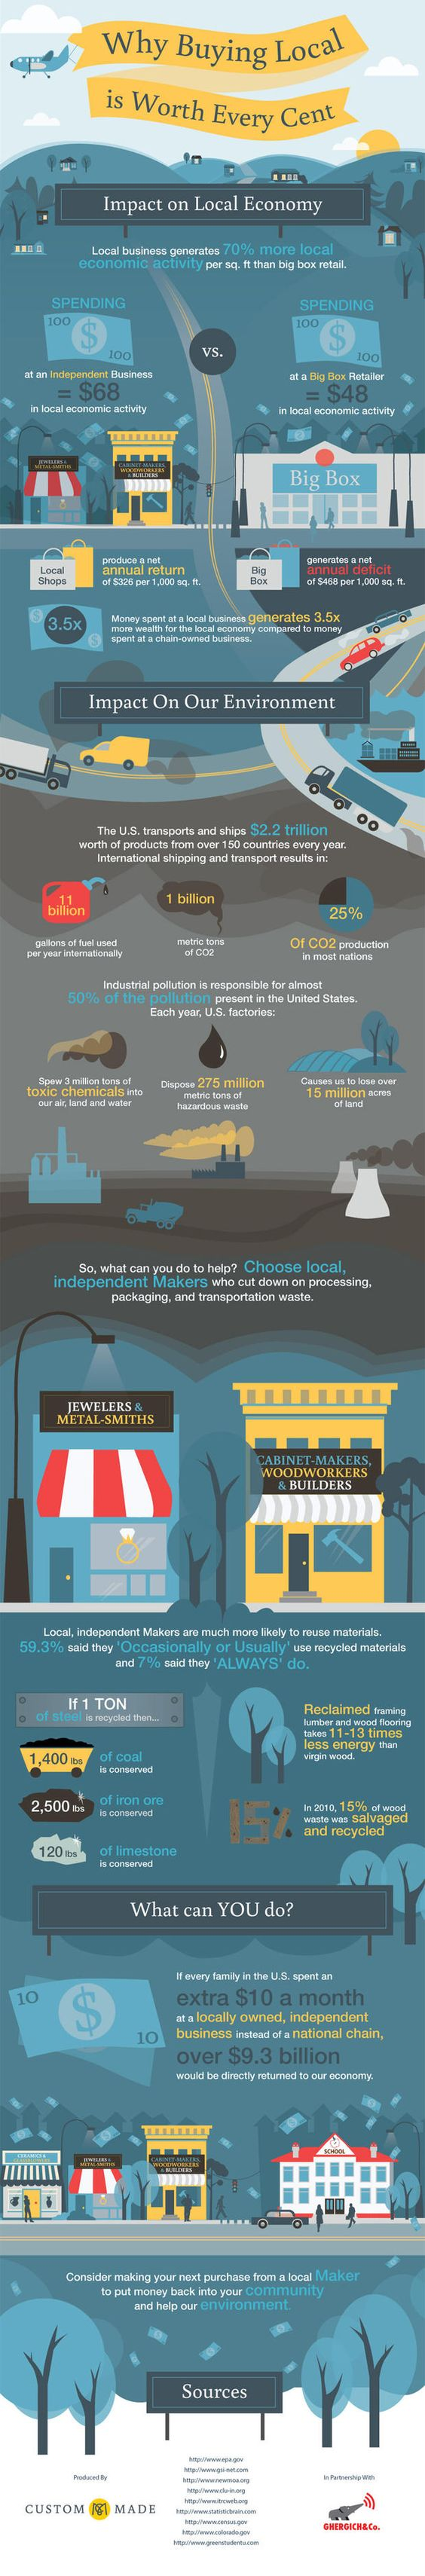 Wish this infographic mentioned that a lot of local/independent businesses call historic Main Street neighborhoods home - so in addition to all the other good they do, they're also supporting #preservation.